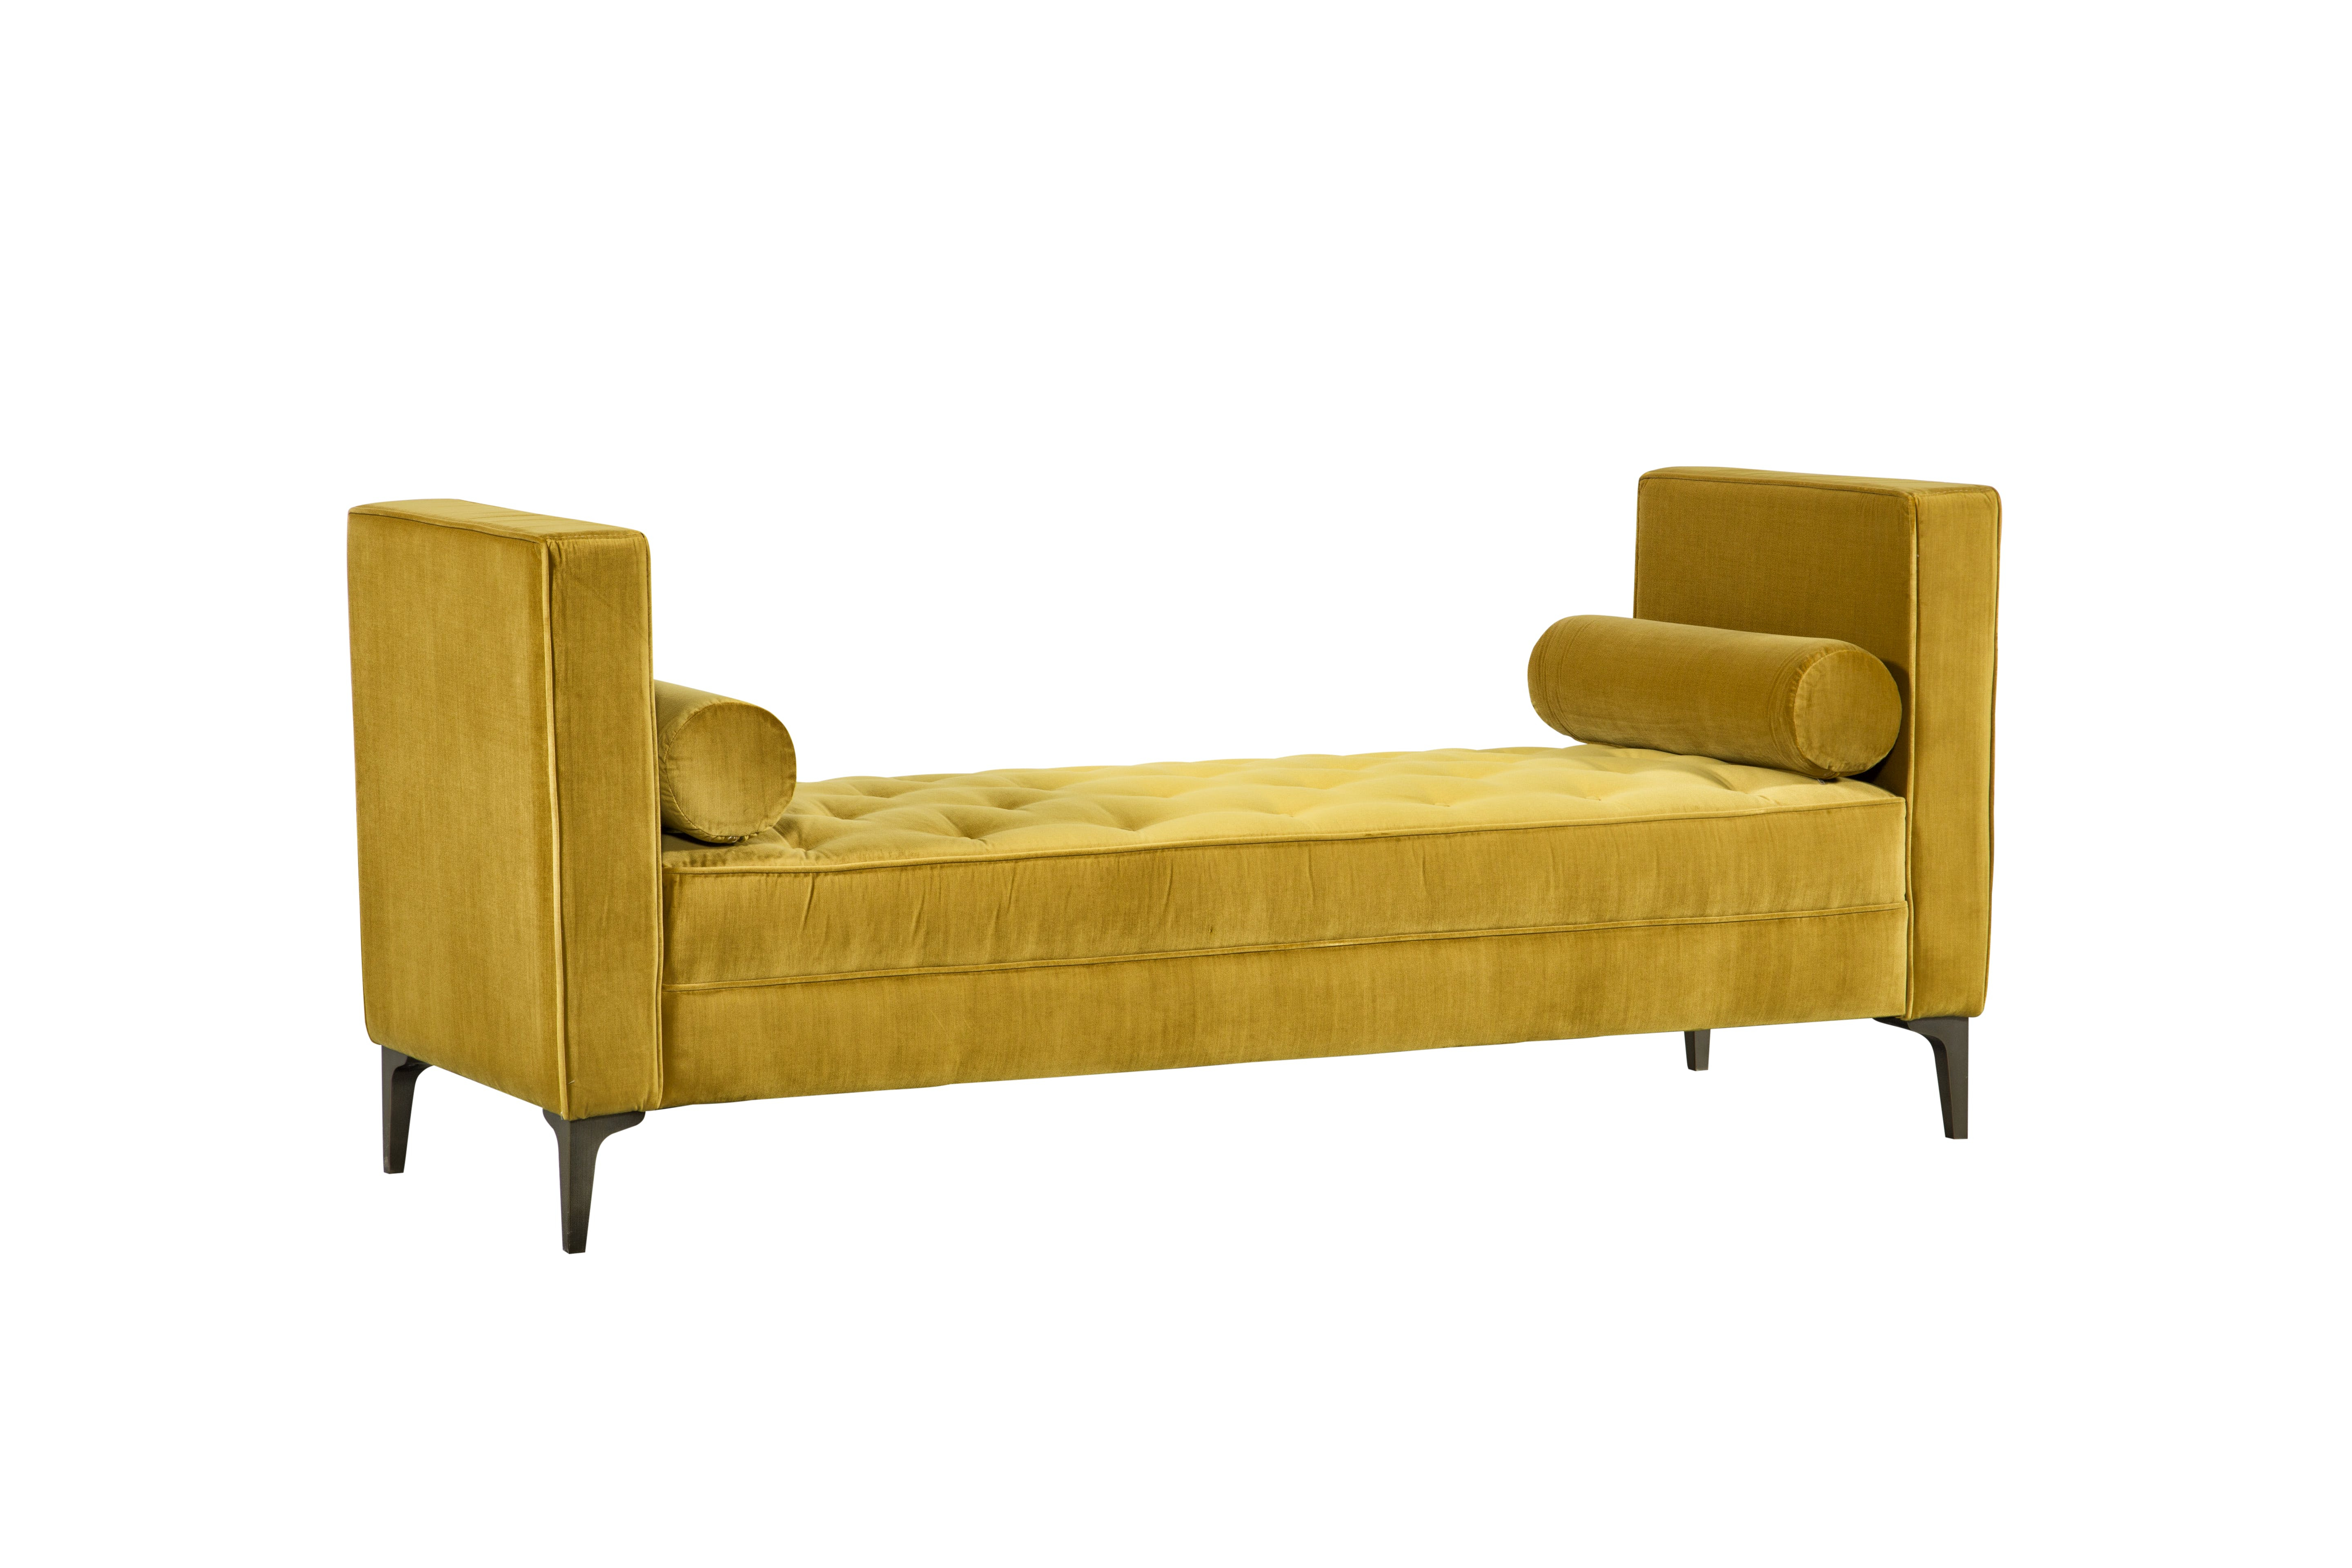 Nate Berkus Just Launched A Home Collection With Hubby Jeremiah Throughout Matteo Arm Sofa Chairs By Nate Berkus And Jeremiah Brent (Image 18 of 25)